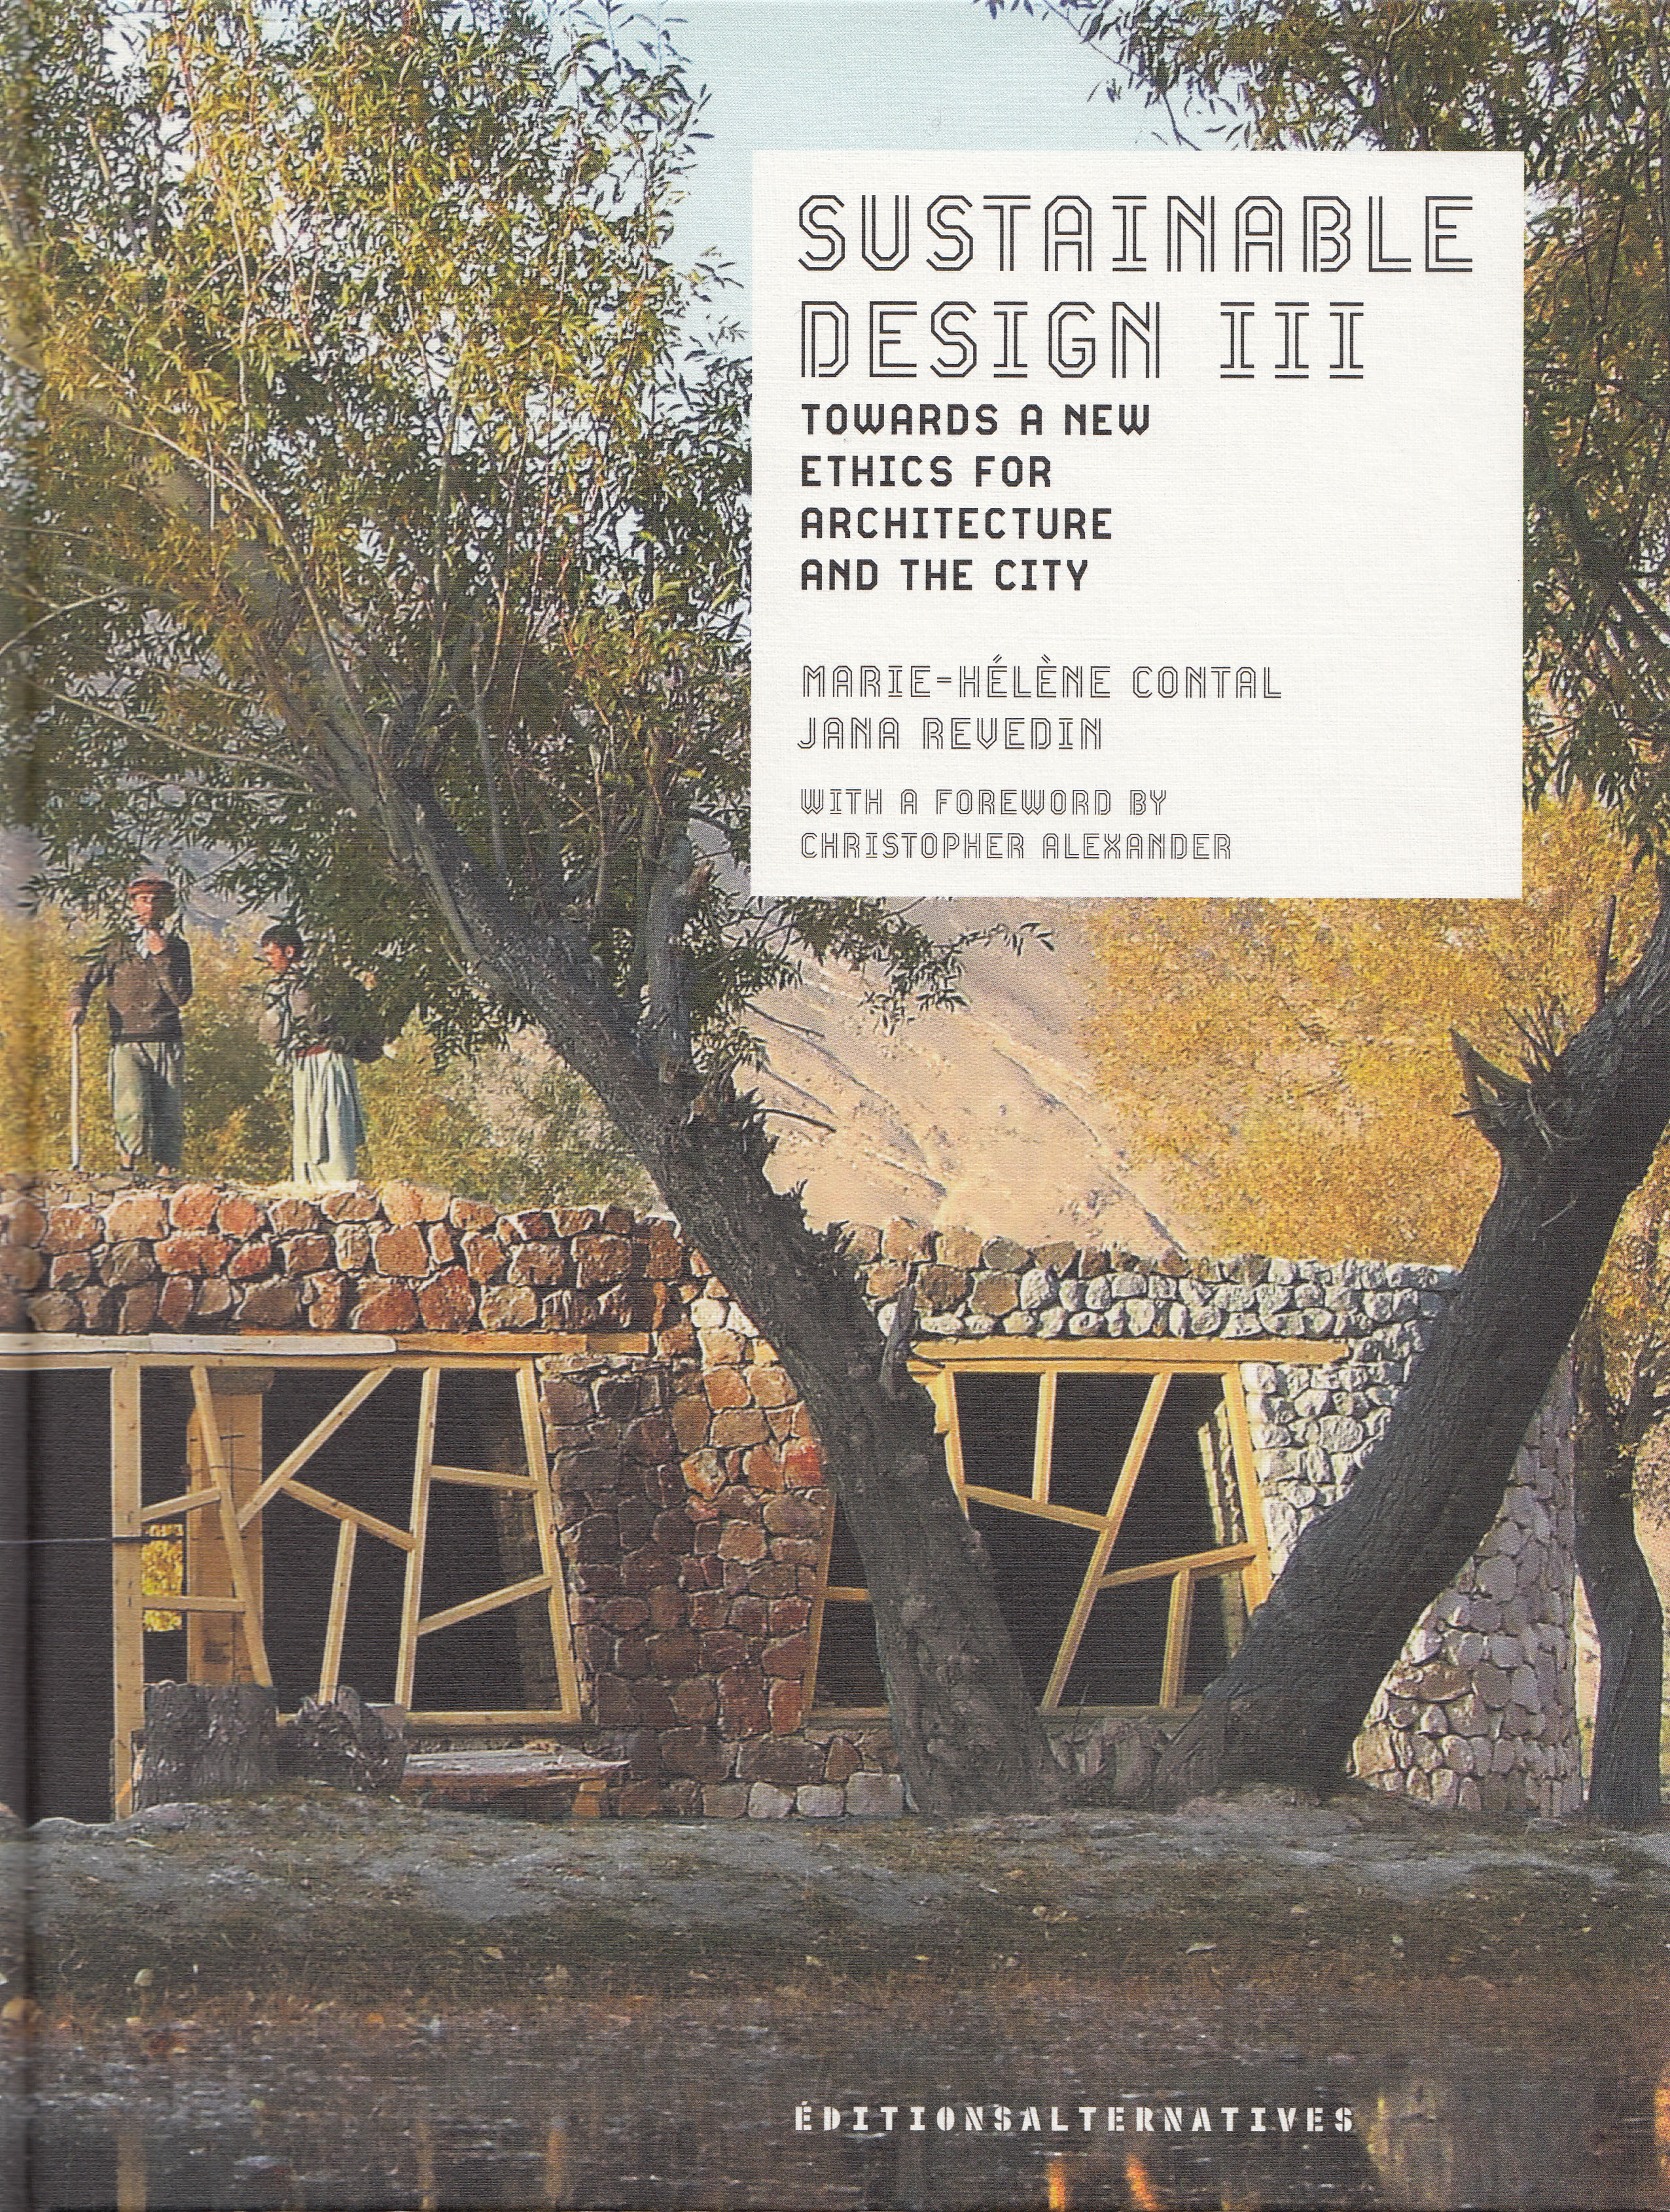 SUSTAINABLE DESIGN III - TOWARDS A NEW ETHICS FOR ARCHITECTURE AND THE CITY